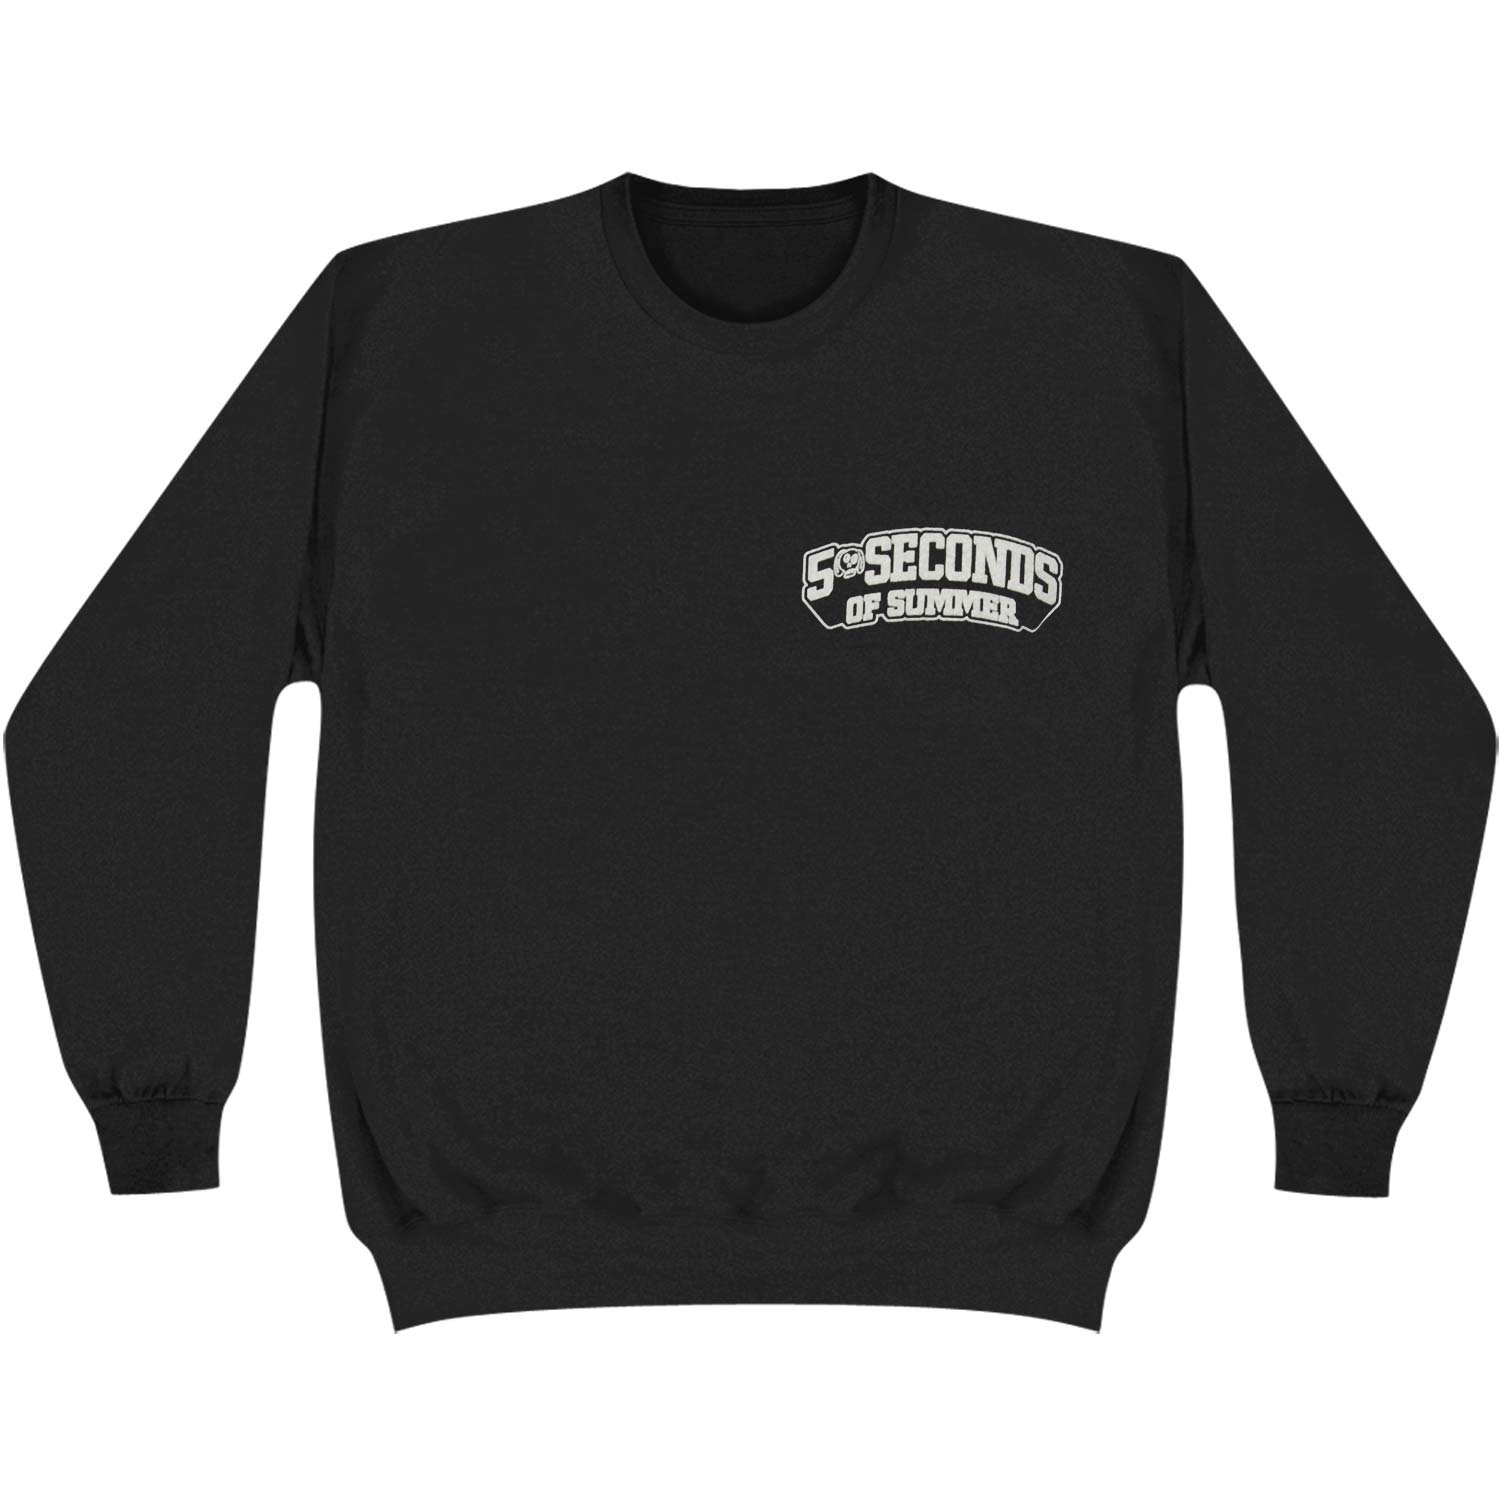 5 Seconds Of Summer Skull Logo Crewneck Pullover Sweatshirt - Black (Medium)